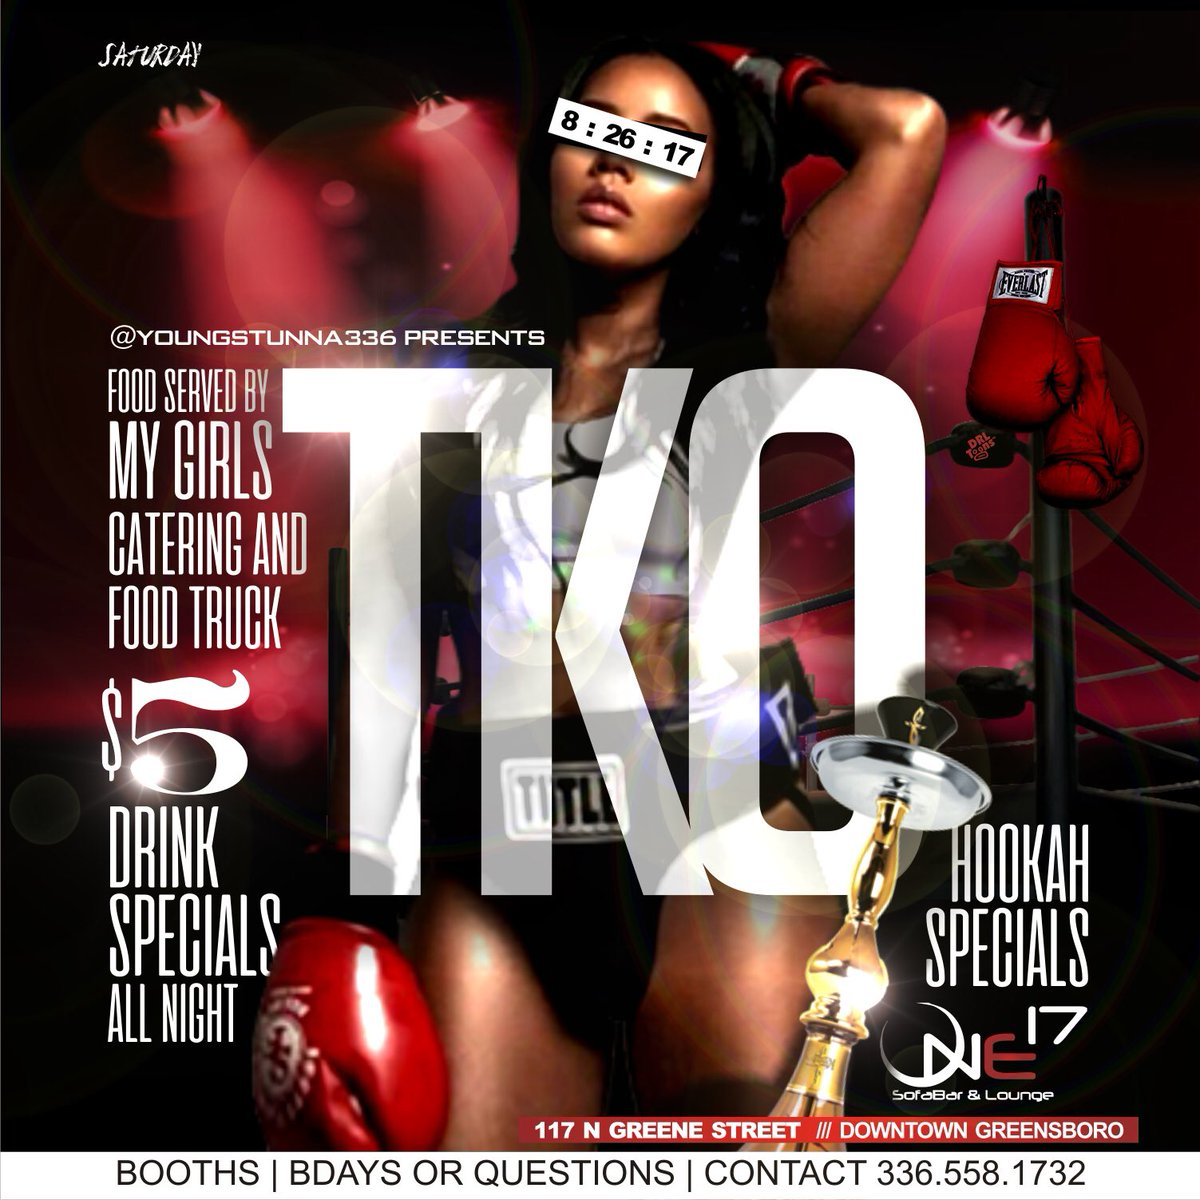 Y&#39;all know what next Saturday is!!#TKO #TheMainEvent  $5 drinks specials ALL NIGHT | Hookah Specials  Food will be available this Saturday!<br>http://pic.twitter.com/CLucI3ChoW